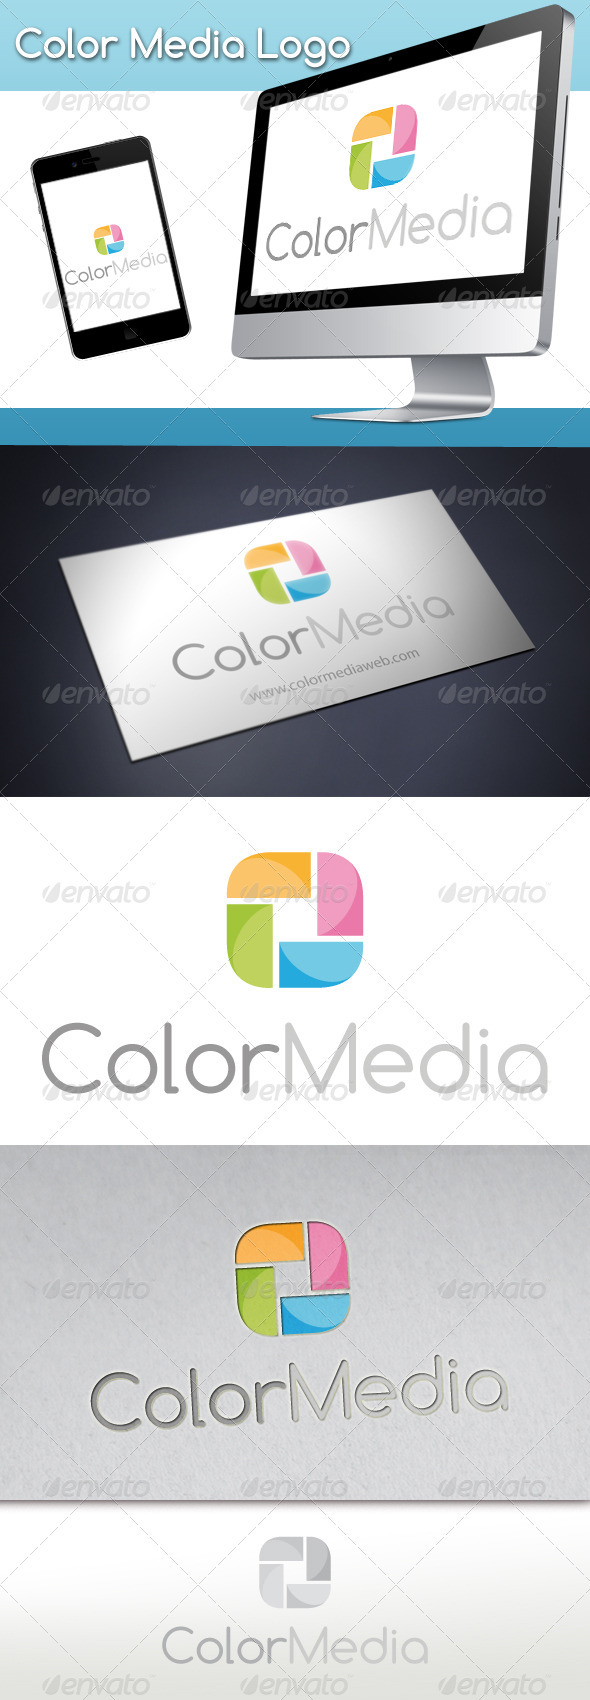 Color Media Logo - Vector Abstract